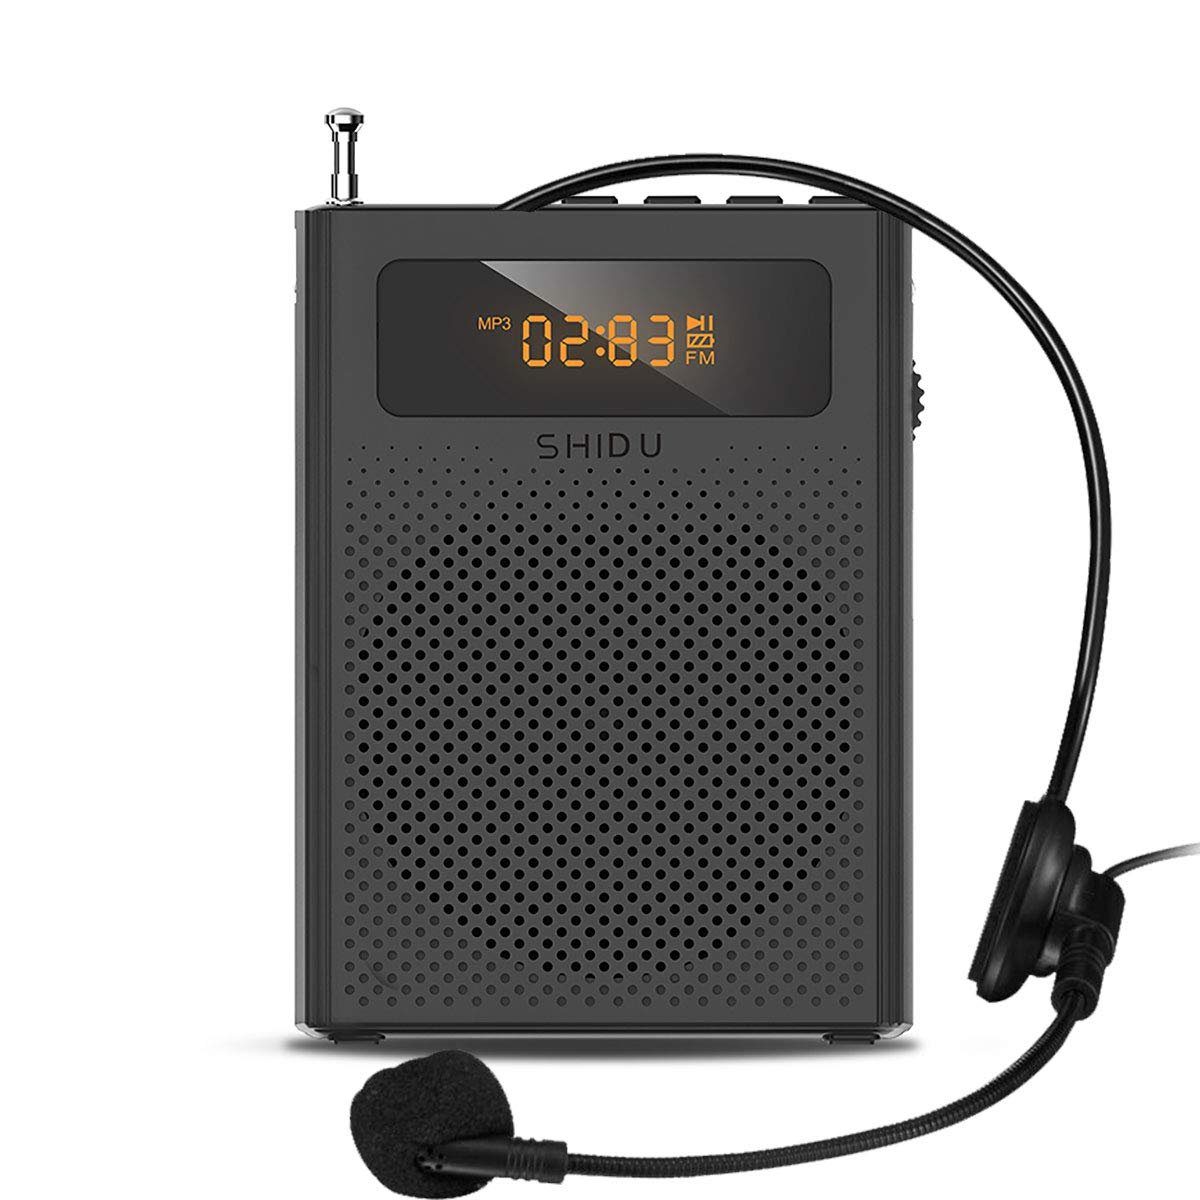 Portable Voice Amplifier with Mini Headset Microphone Updated Voice Speaker for Teachers Elderly Tour Guide Supports MP3 Format Audio Black by RJoanna Jeremiah